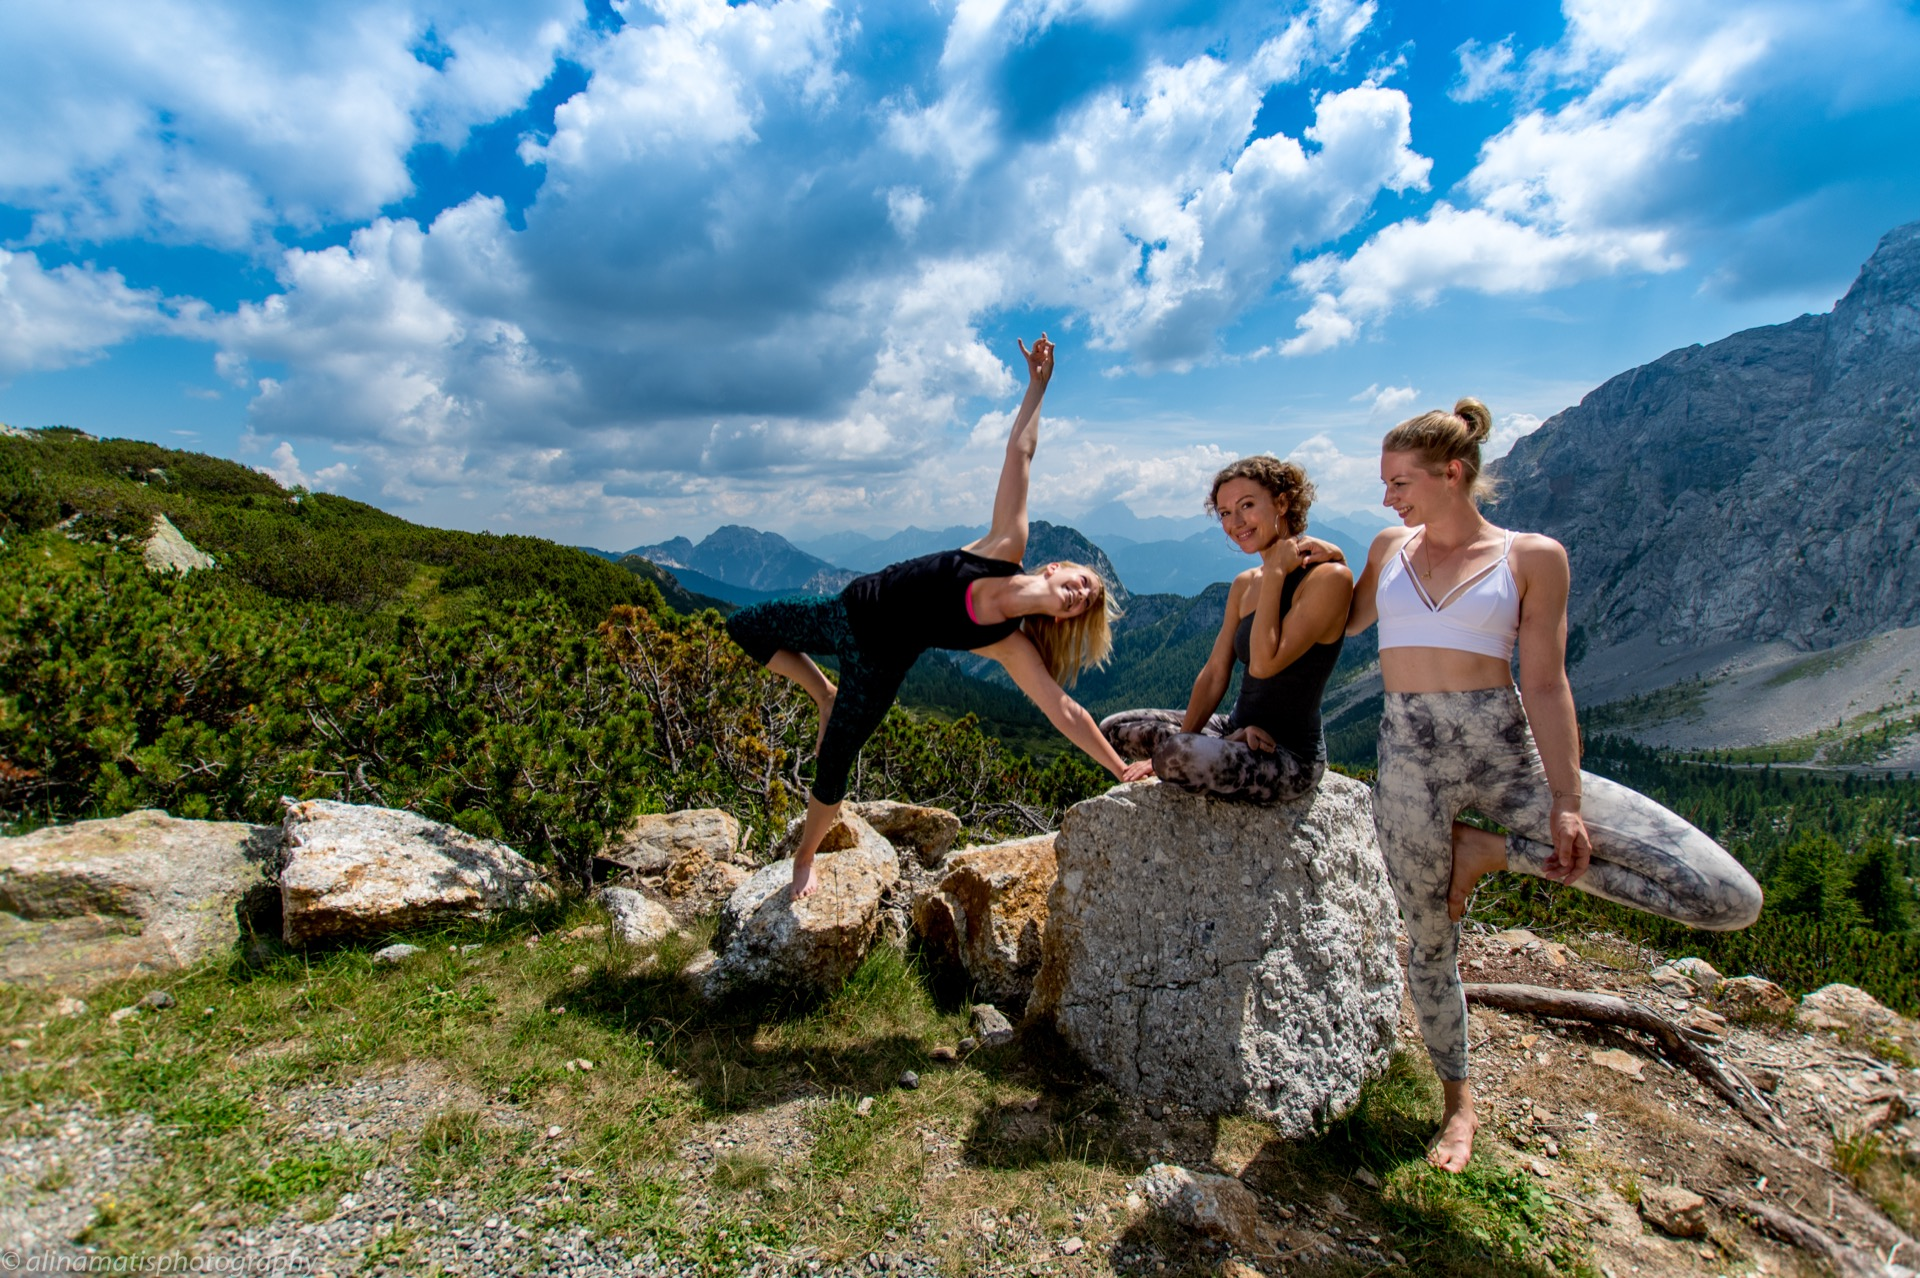 Hie-Kim-Friends-2018-Yoga-Retreat-Alina-Matis-Photography-159 - Hie Kim Yoga - Yoga Retreat - Yoga Workshops und Reisen